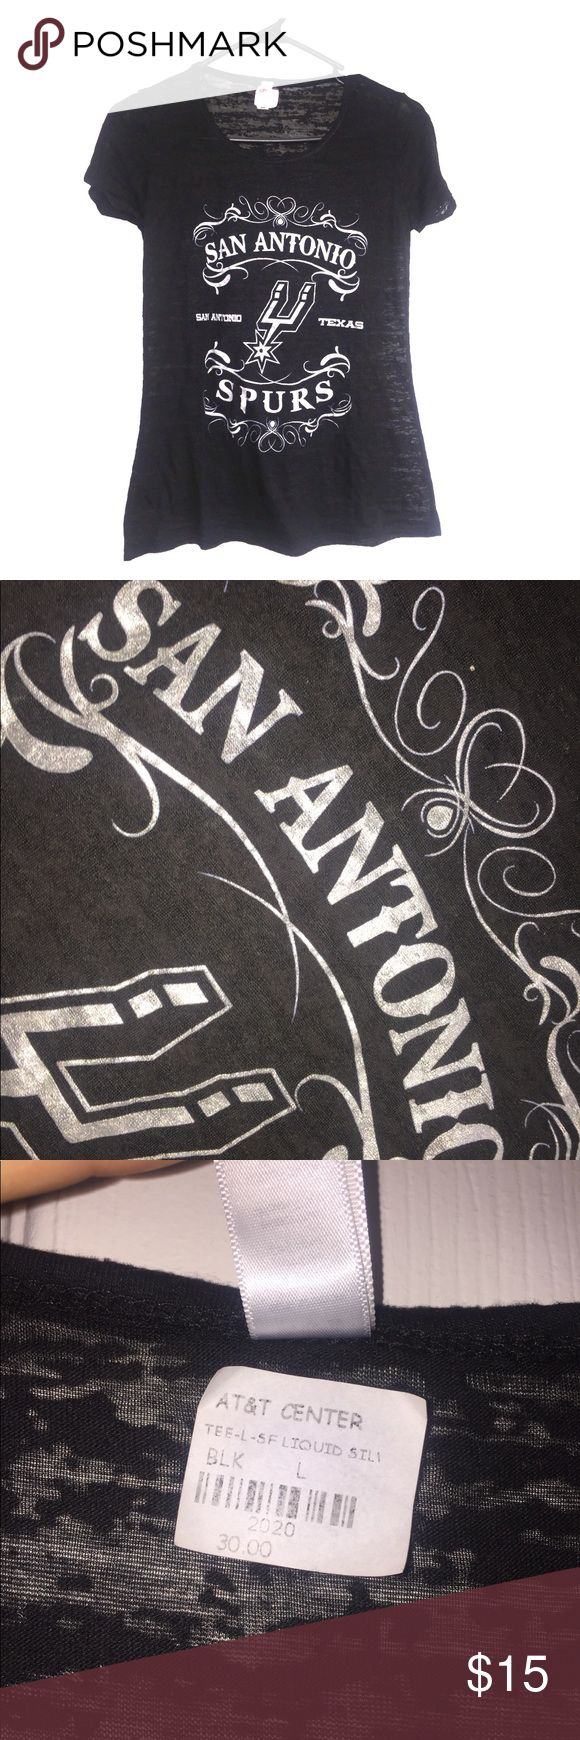 Spurs Shirt See threw t-shirt San Antonio Spurs. Never worn bought it after Spurs game. It's a large size but looks like small size or x-small. Lettering it silver. Tops Tees - Short Sleeve